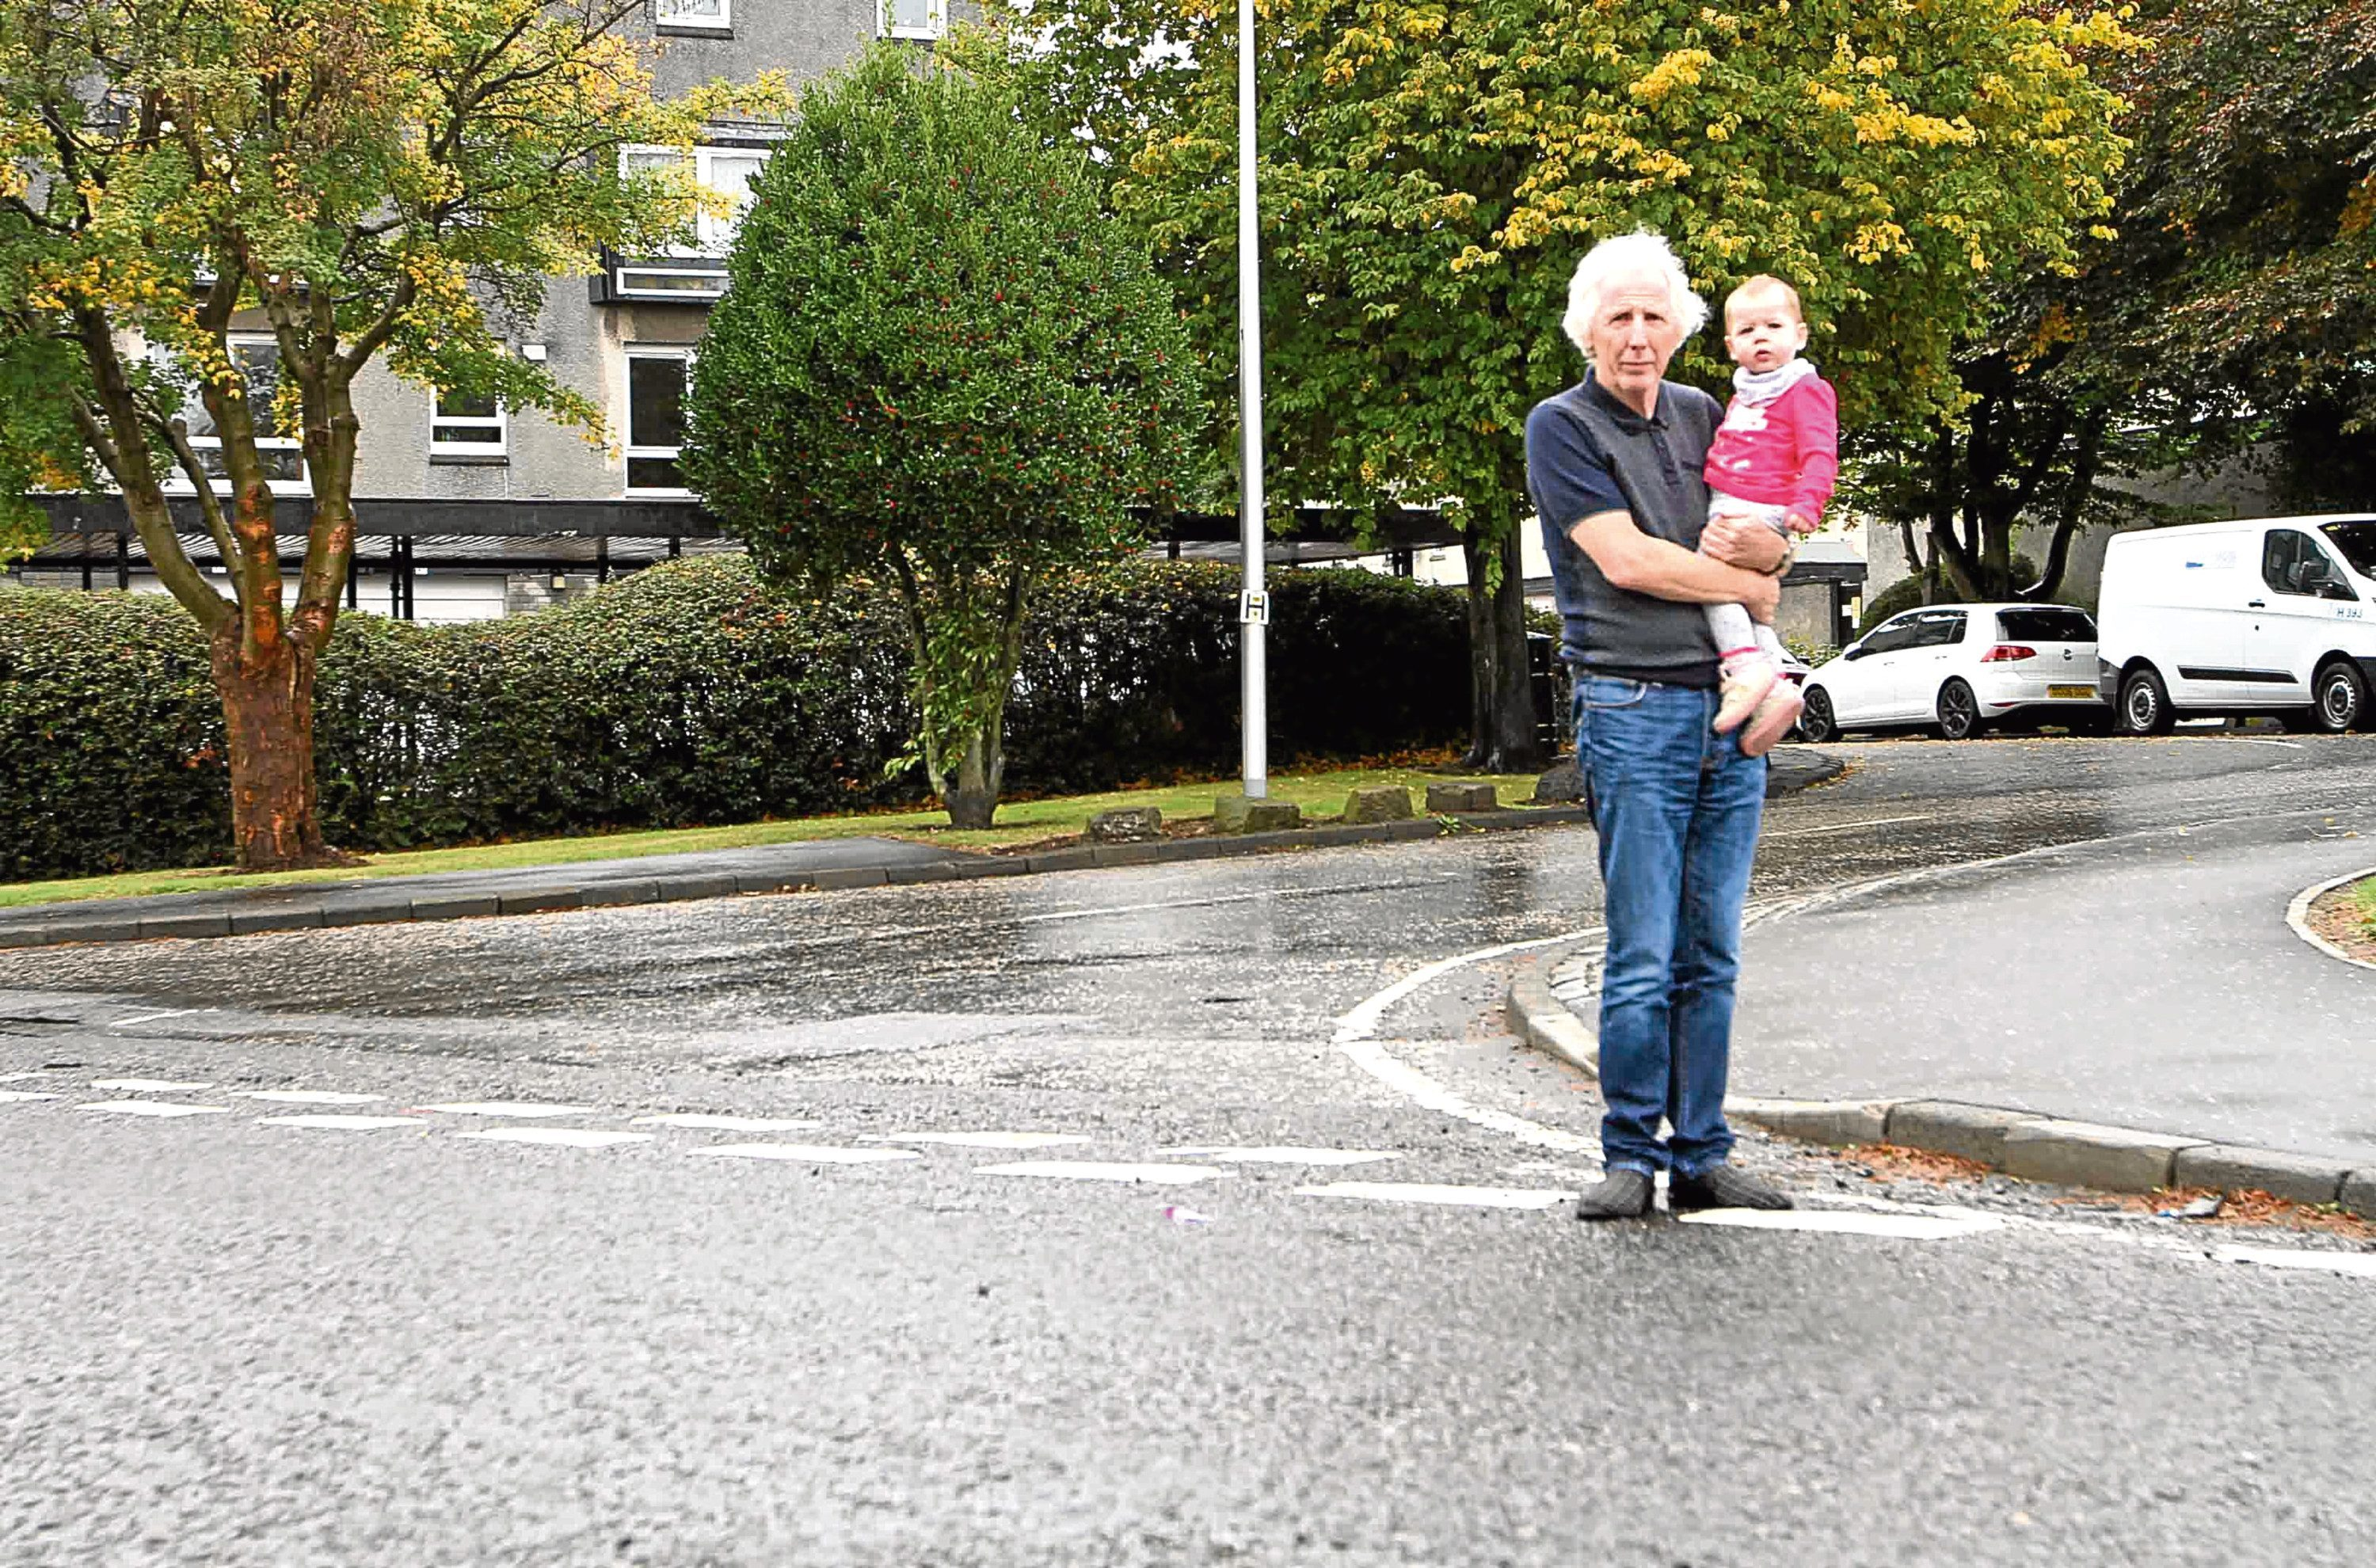 Michael Markie, 65, and his one-year-old granddaughter Ameile Ritchie at the junction.